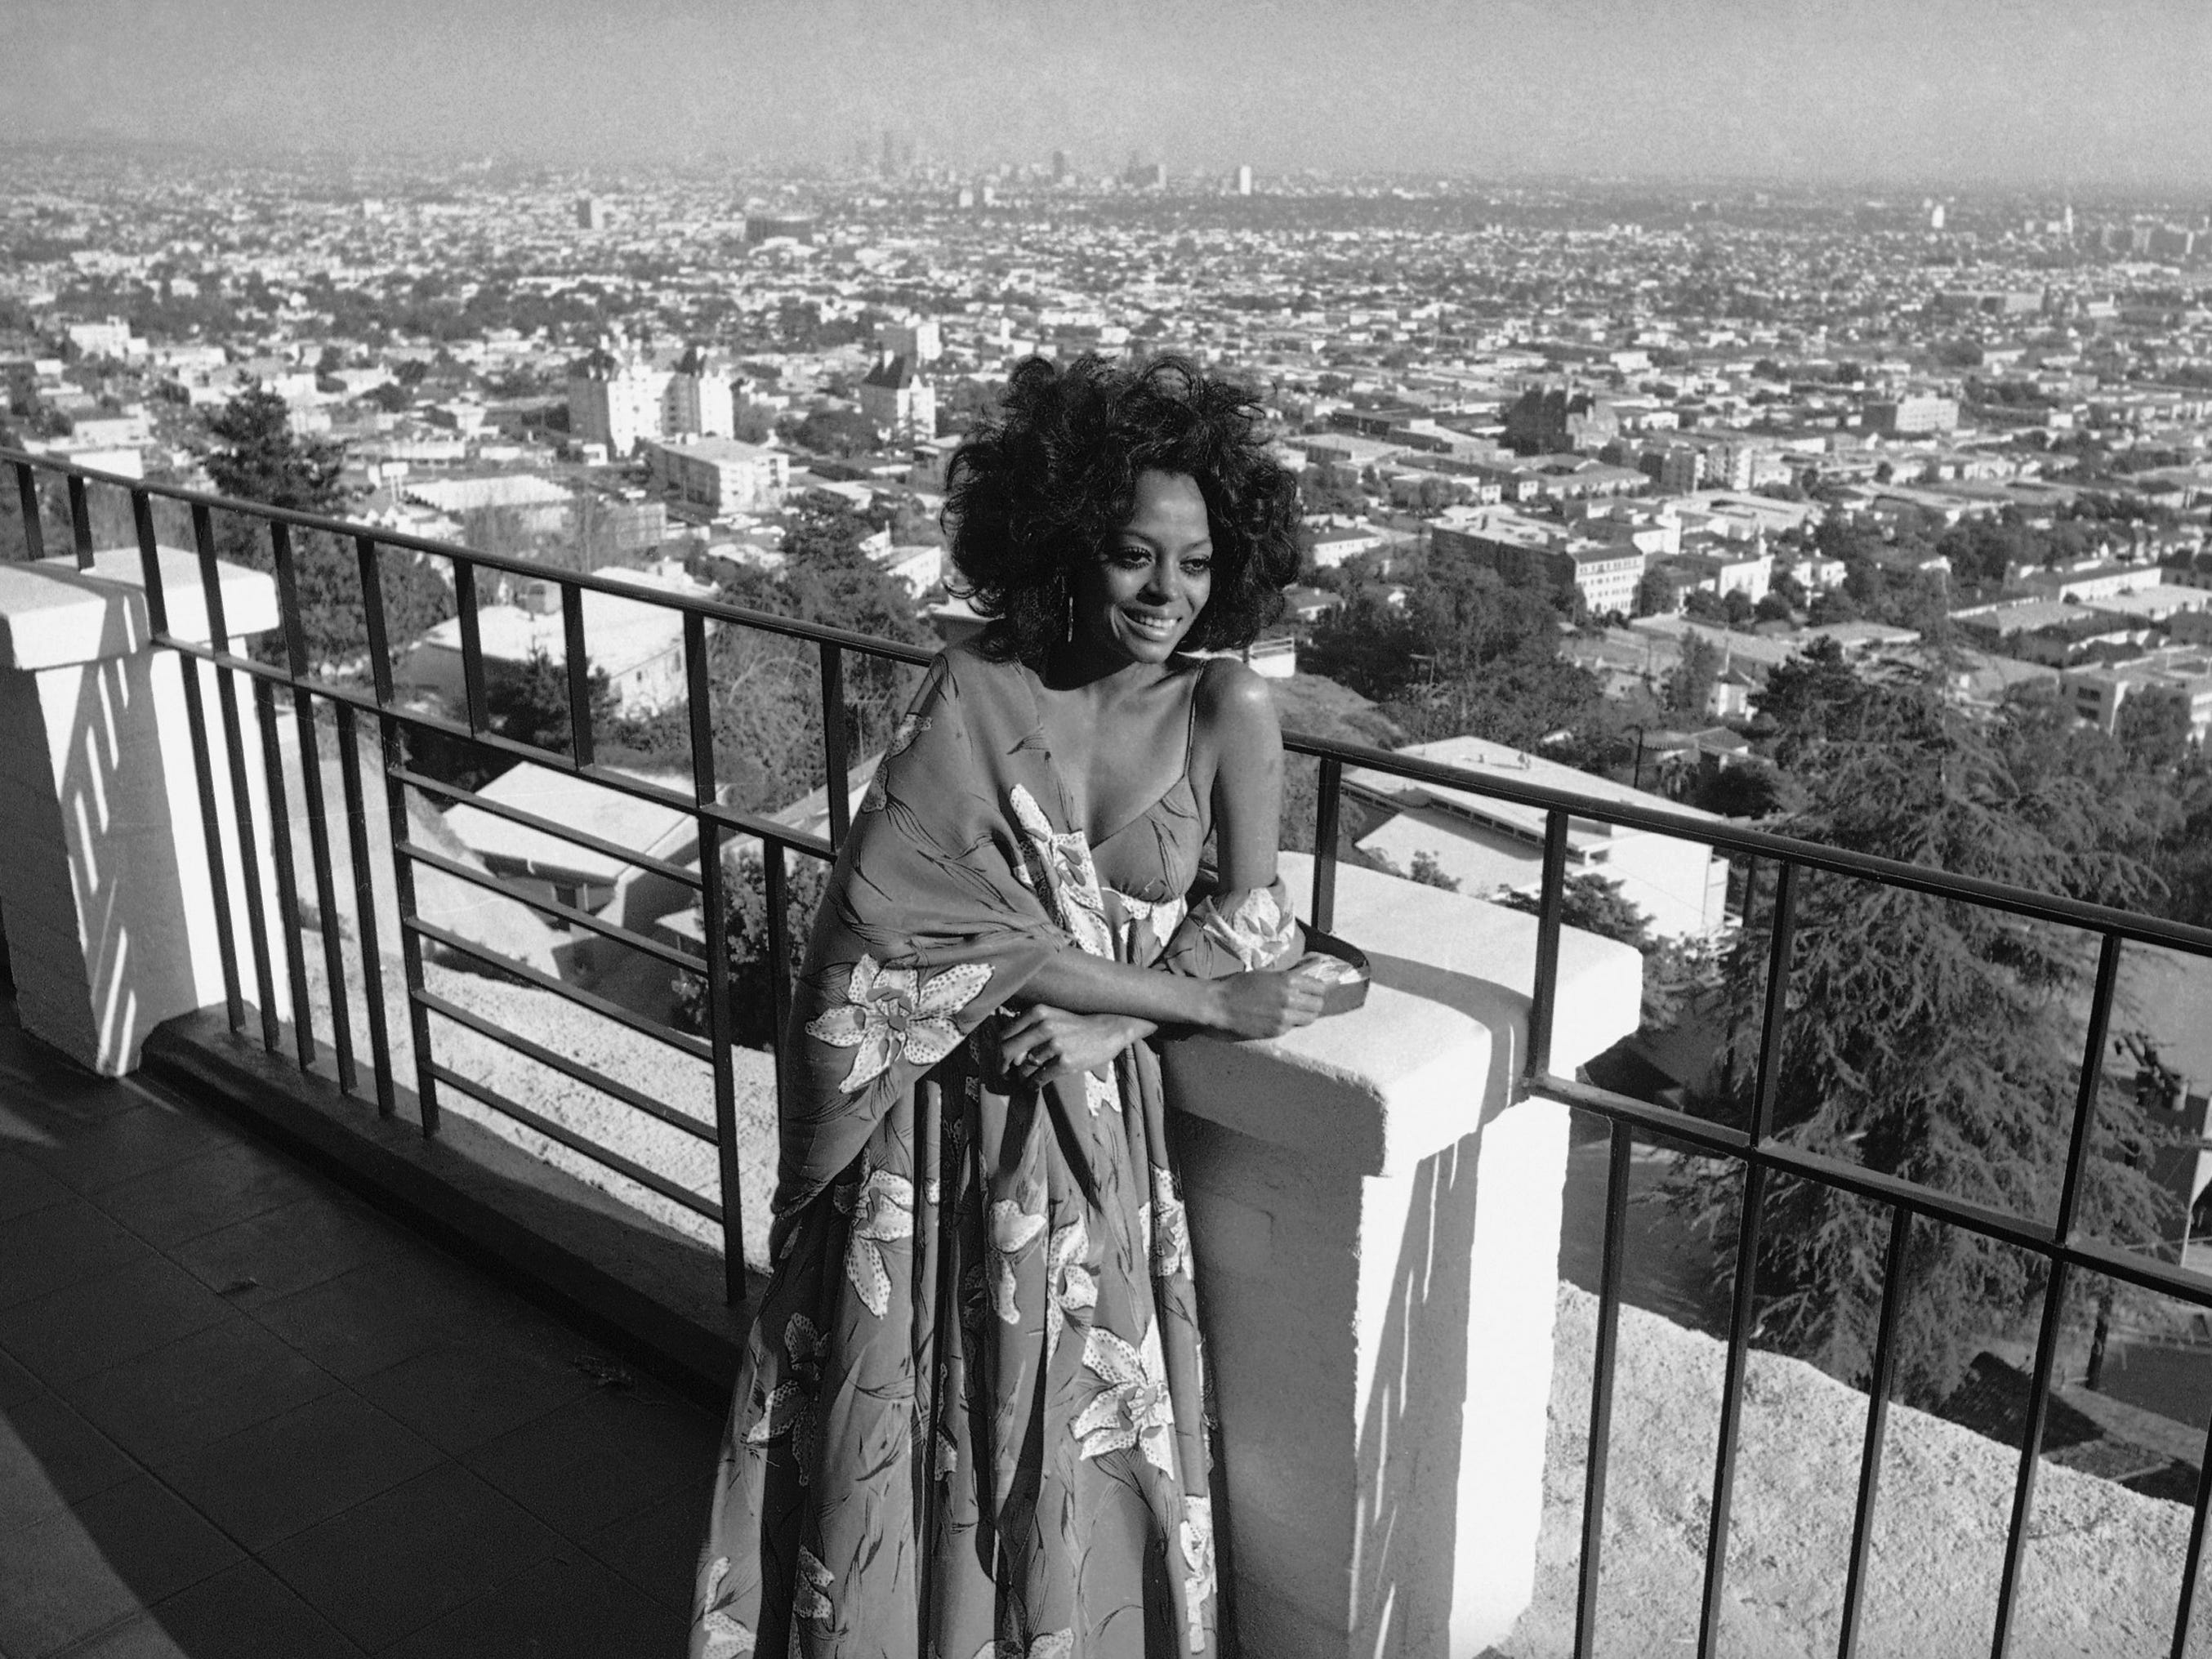 "Hollywood had become home for Diana Ross, seen here in 1971. Her solo career started with hit singles ""Reach Out and Touch Somebody's Hand,"" and ""Ain't No Mountain High Enough."" In 1971, she also married music executive Robert Ellis Silberstein."